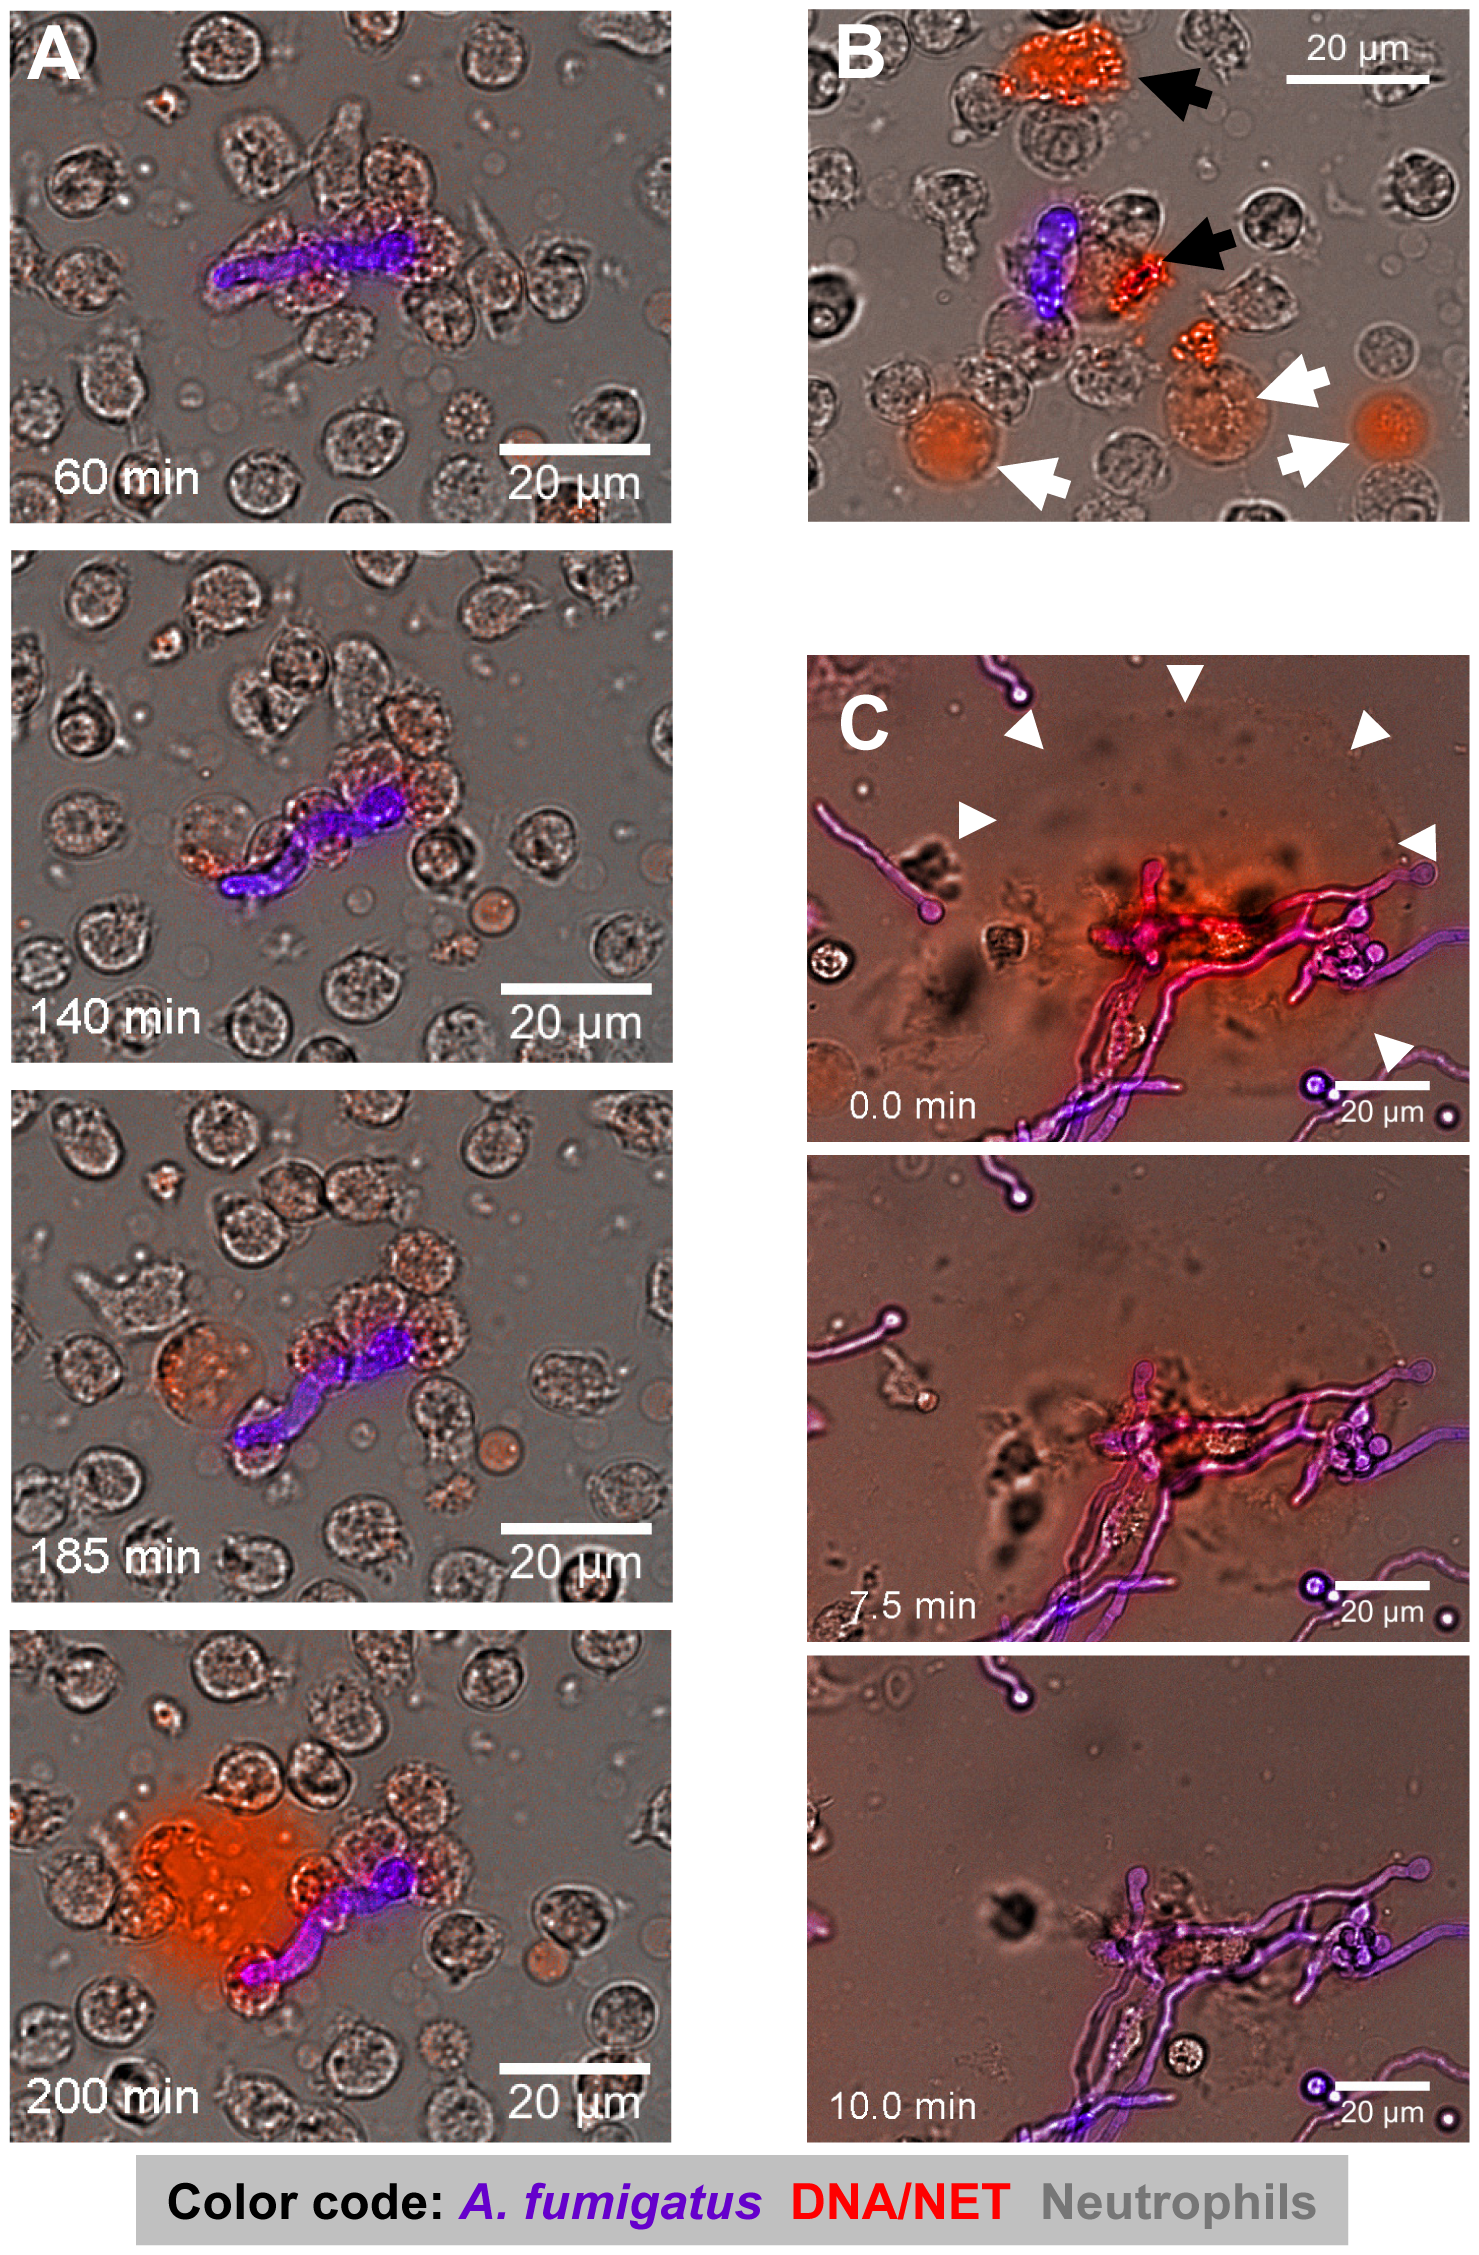 Time-lapse widefield microscopy of NET formation by neutrophils co-incubated with swollen conidia of <i>A. fumigatus</i>.